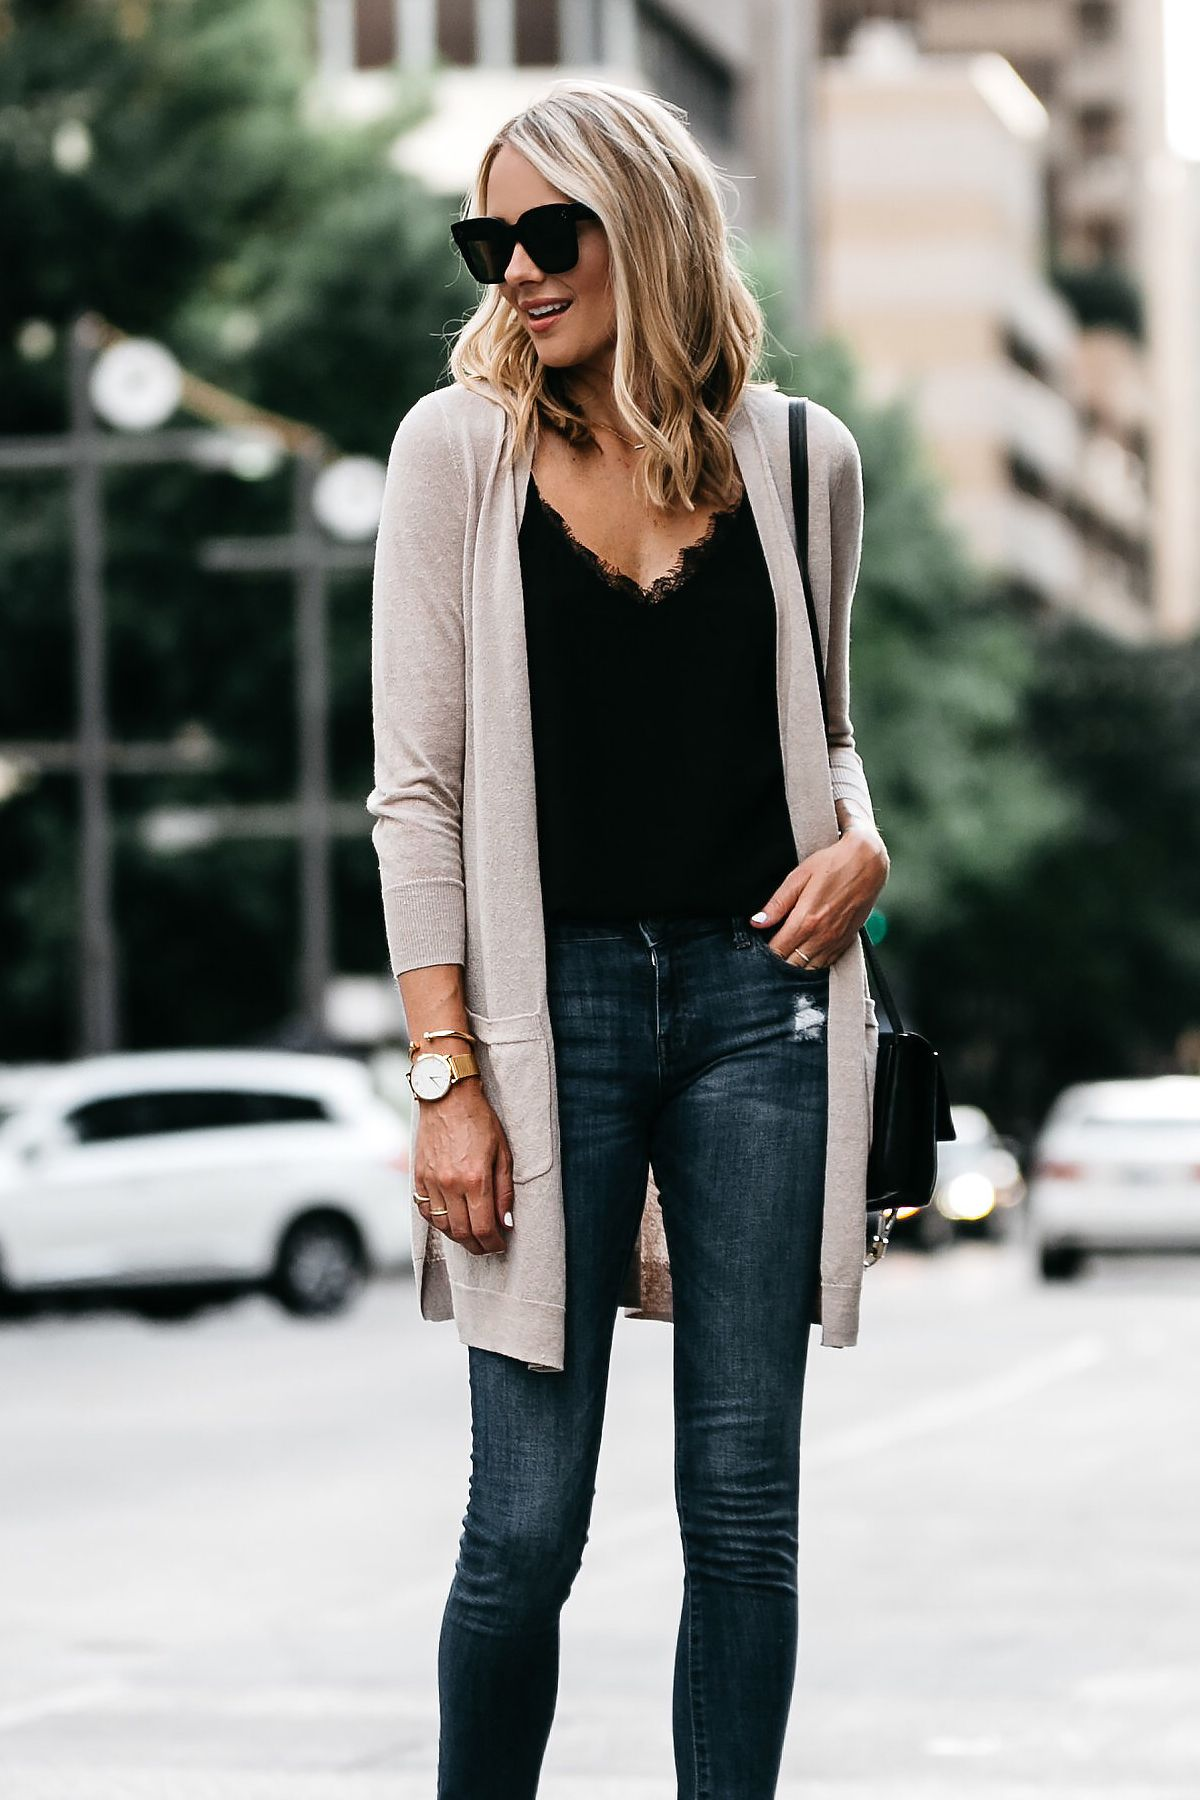 dbf11cfb13 Blonde Woman Wearing Long Tan Cardigan Black Lace Cami Denim Skinny Jeans  Outfit Fashion Jackson Dallas Blogger Fashion Blogger